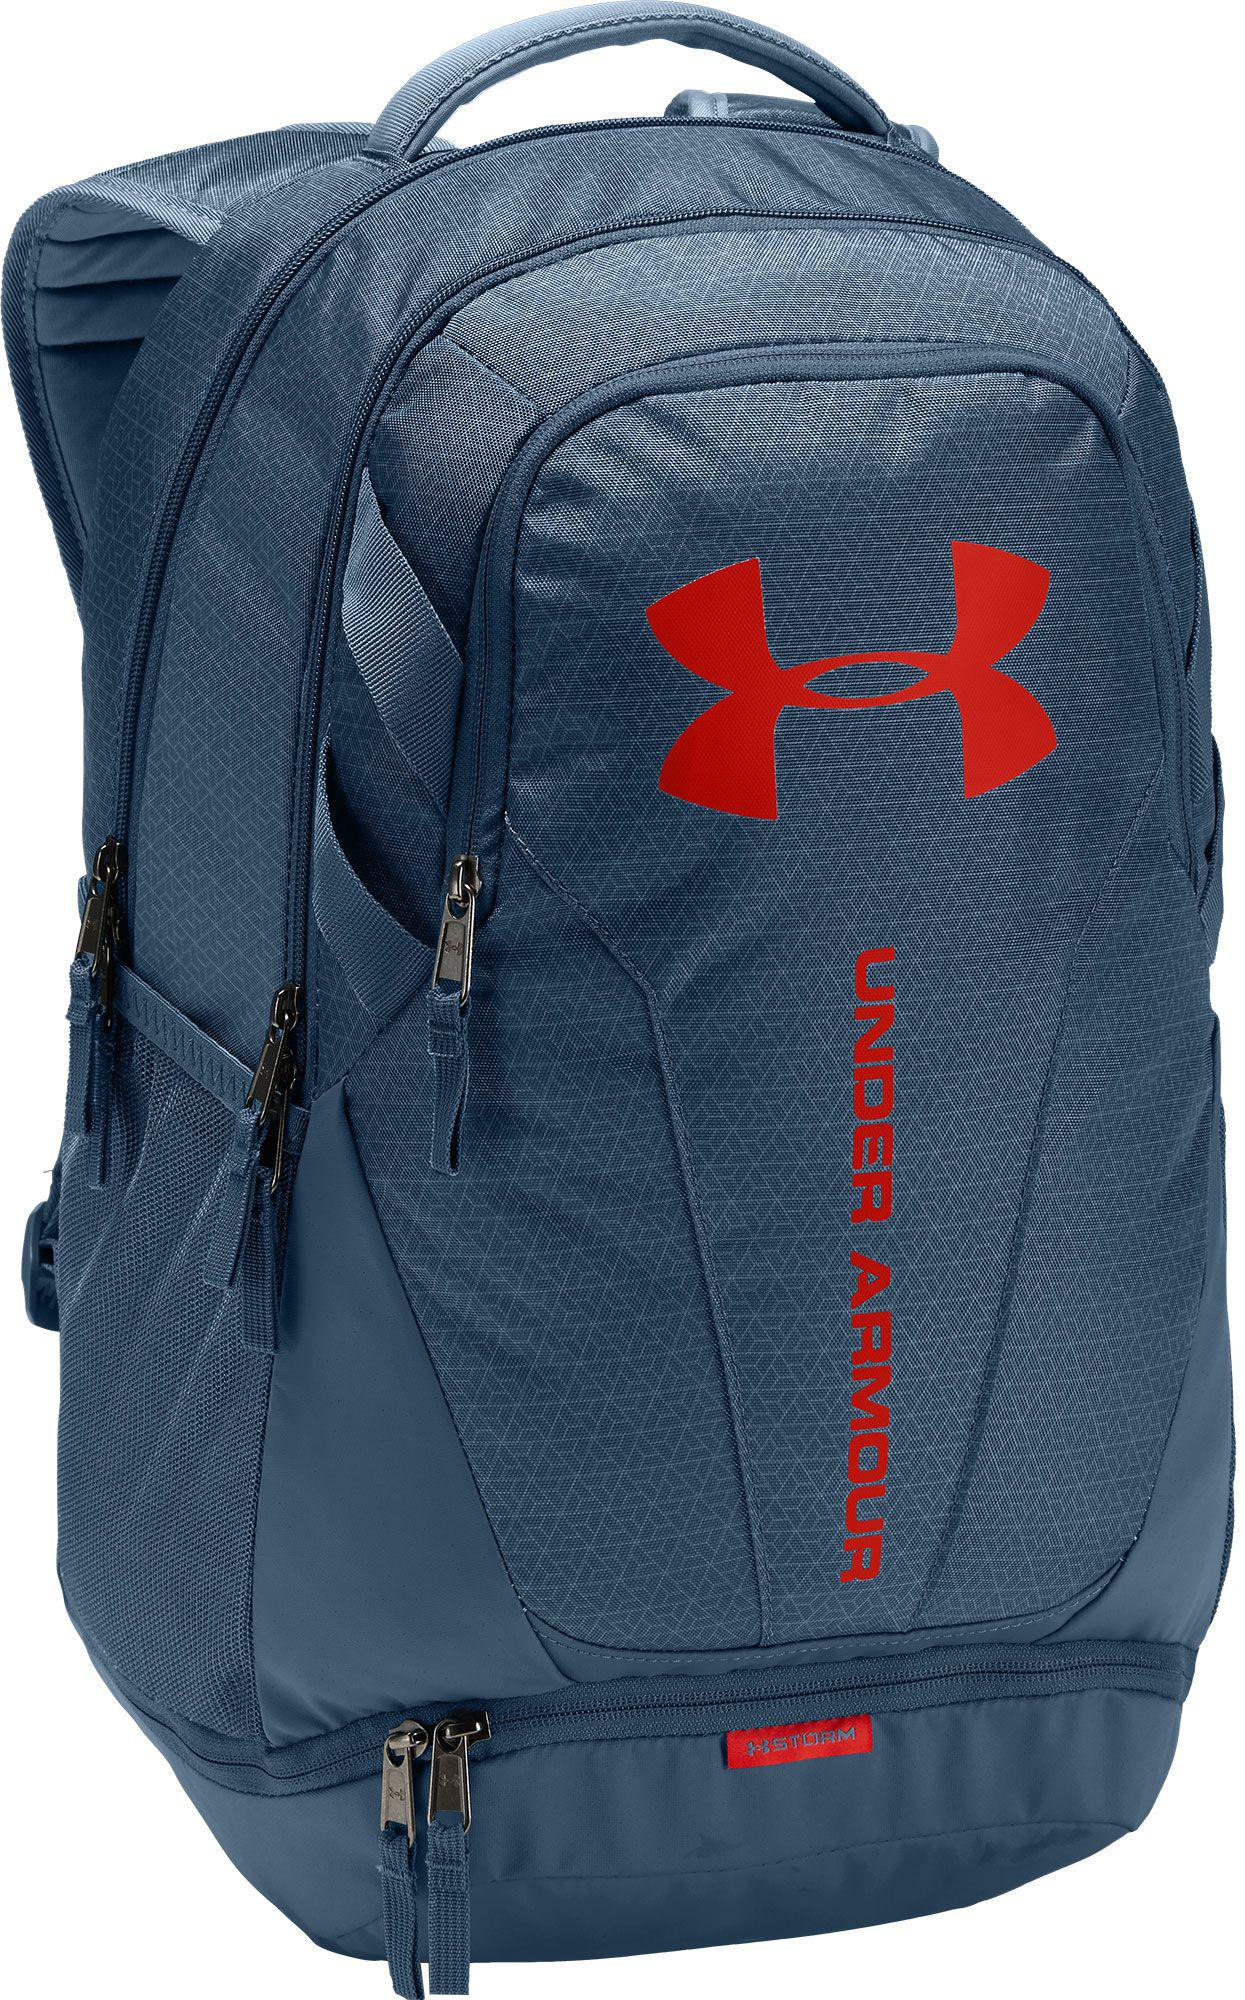 50efbd5e52d5 Lyst - Under Armour Hustle 3.0 Backpack in Blue